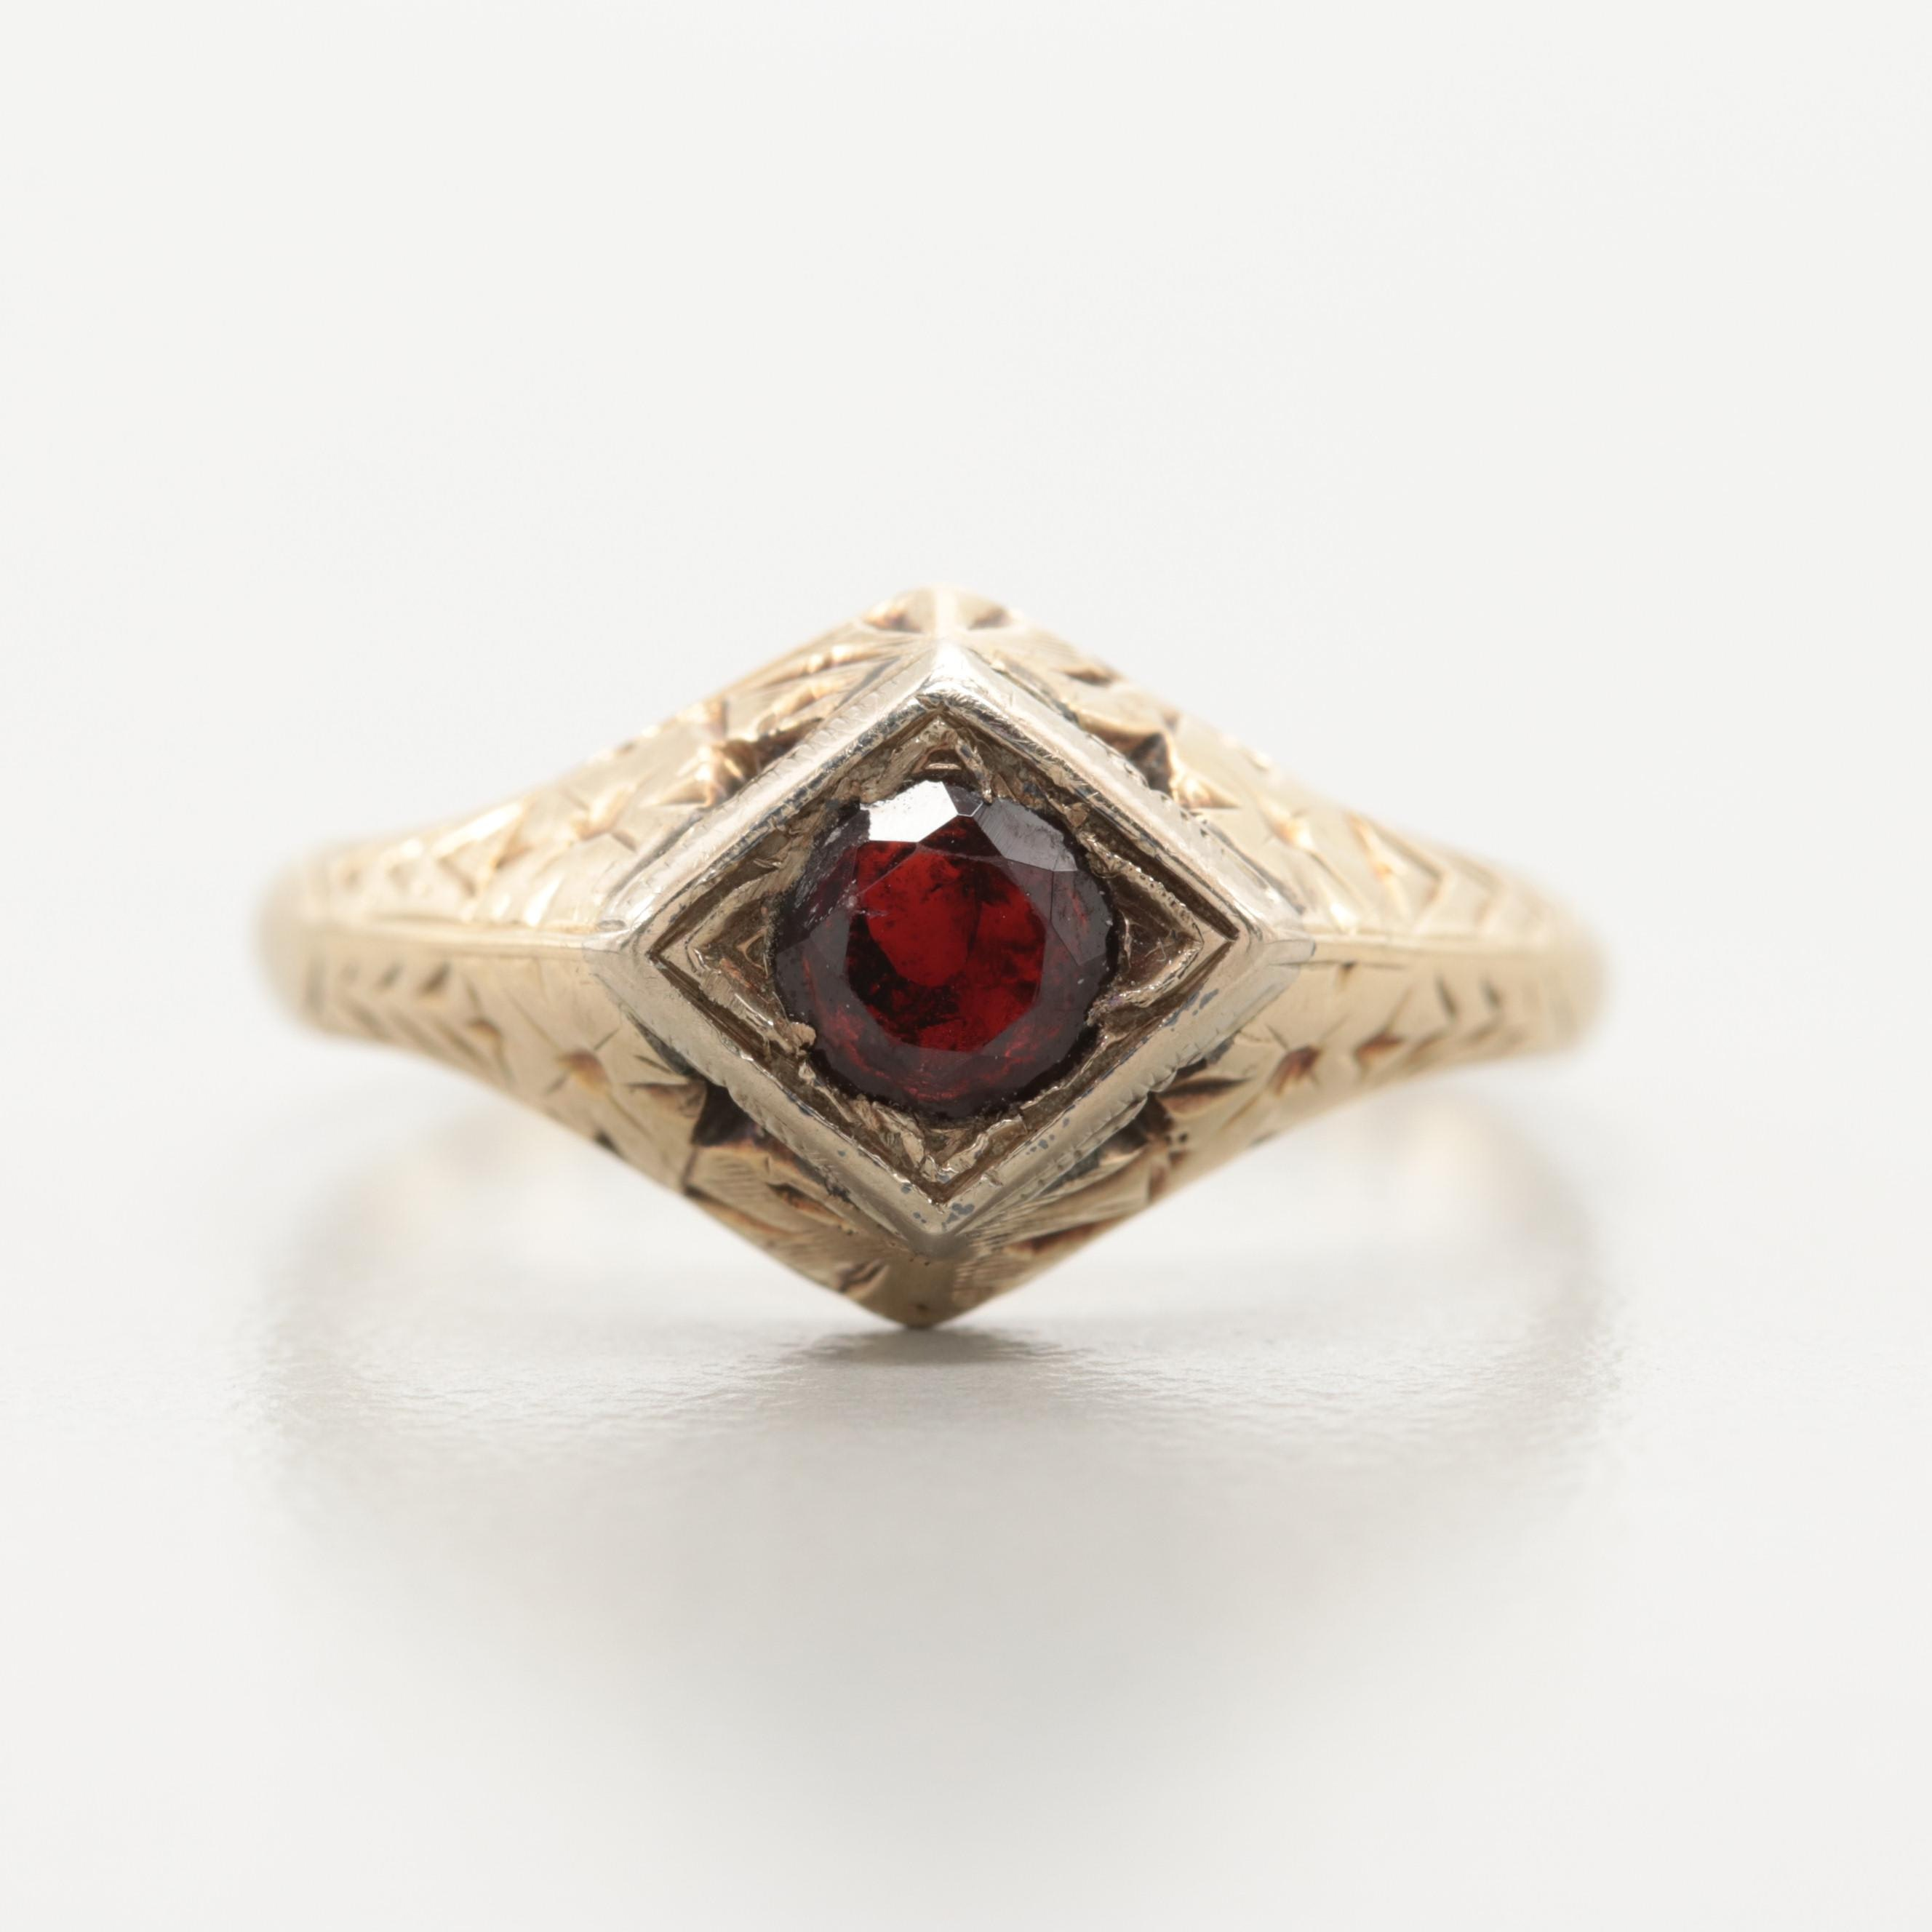 Late Victorian 14K Yellow Gold Garnet Ring